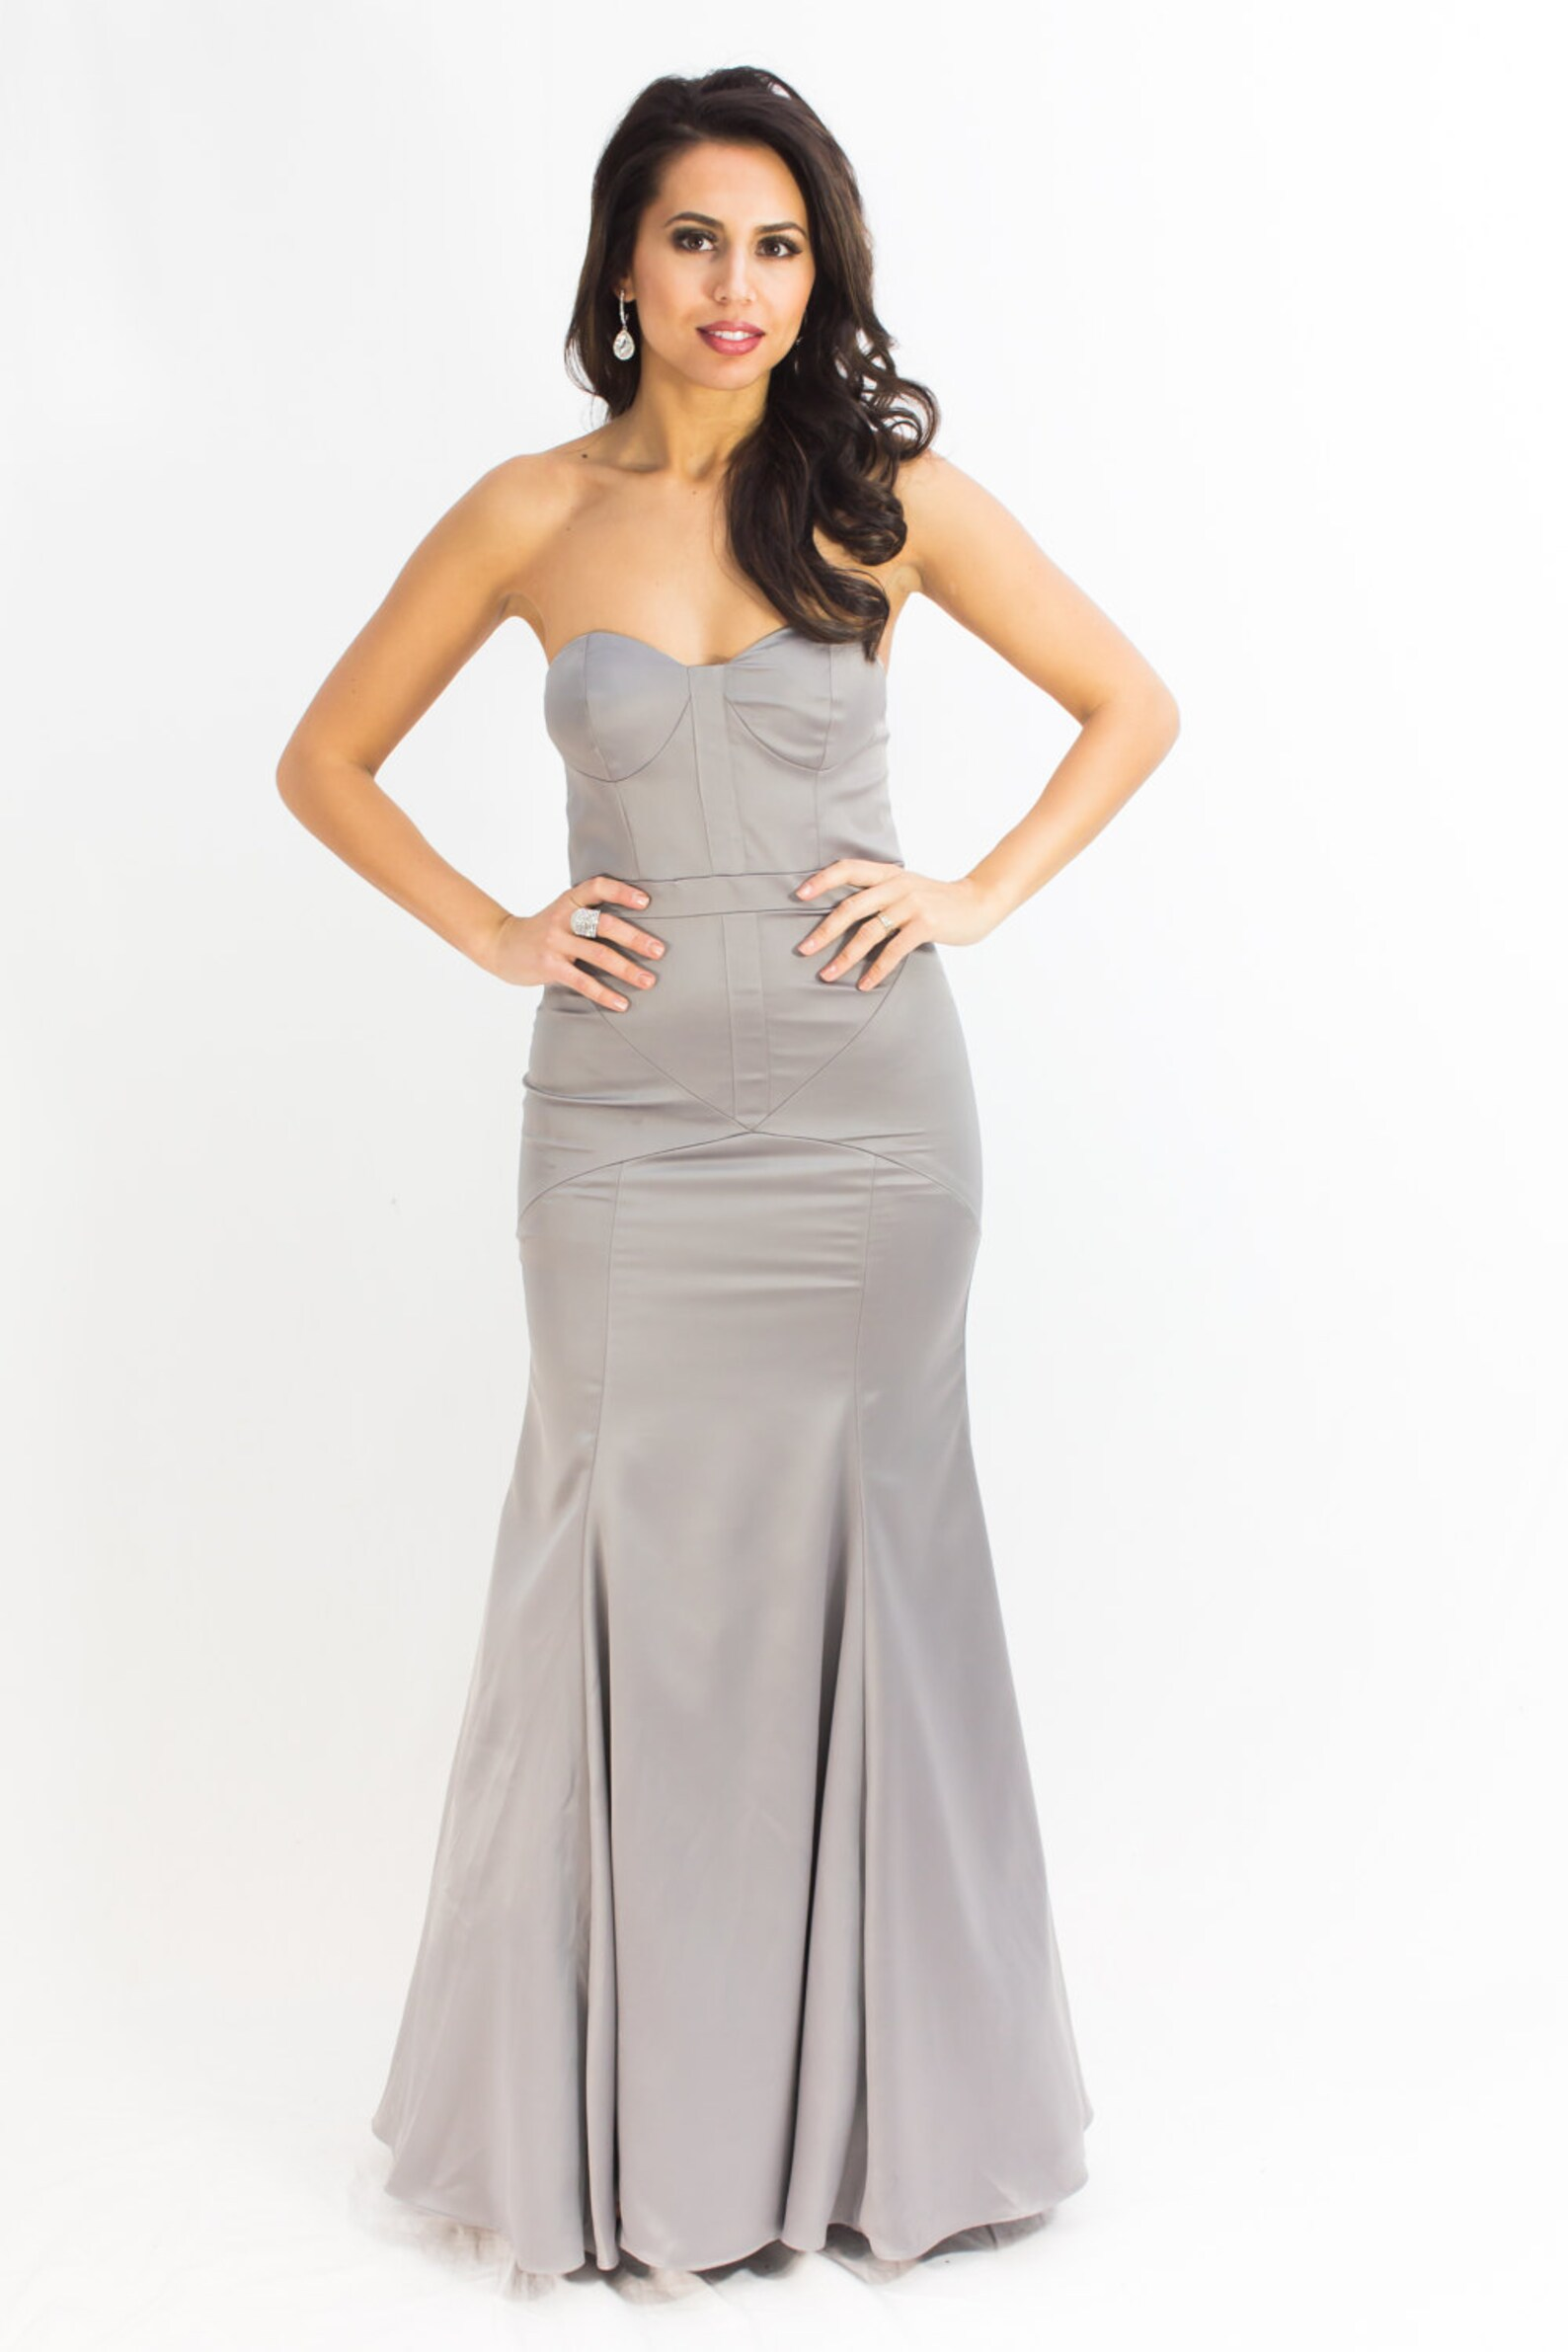 Fitted curve-hugging bridesmaid dress